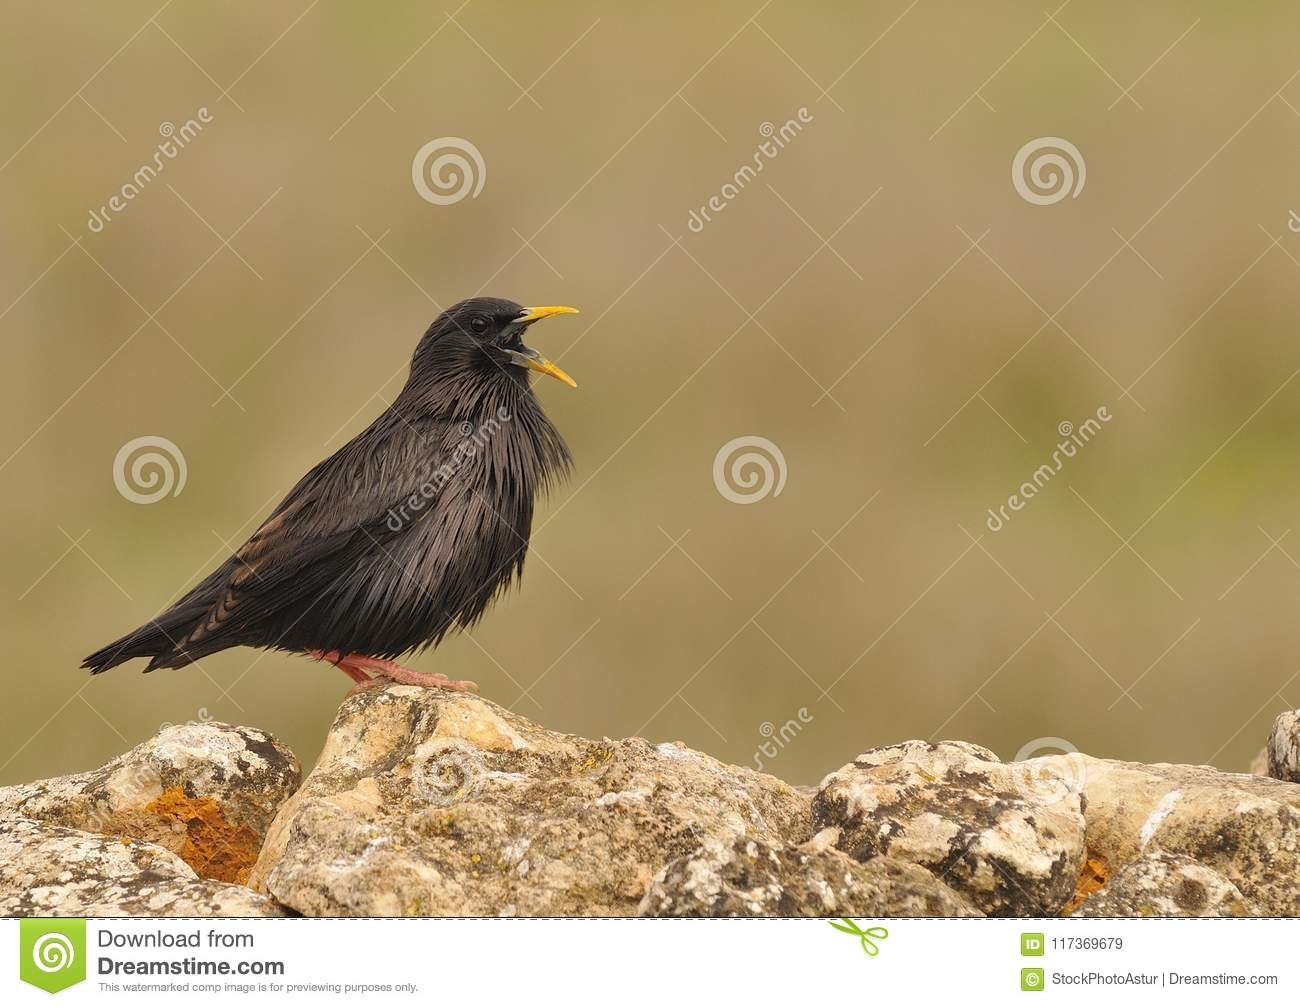 Spotless Starling Perched On A Stone Stock Image - Image of wildlife